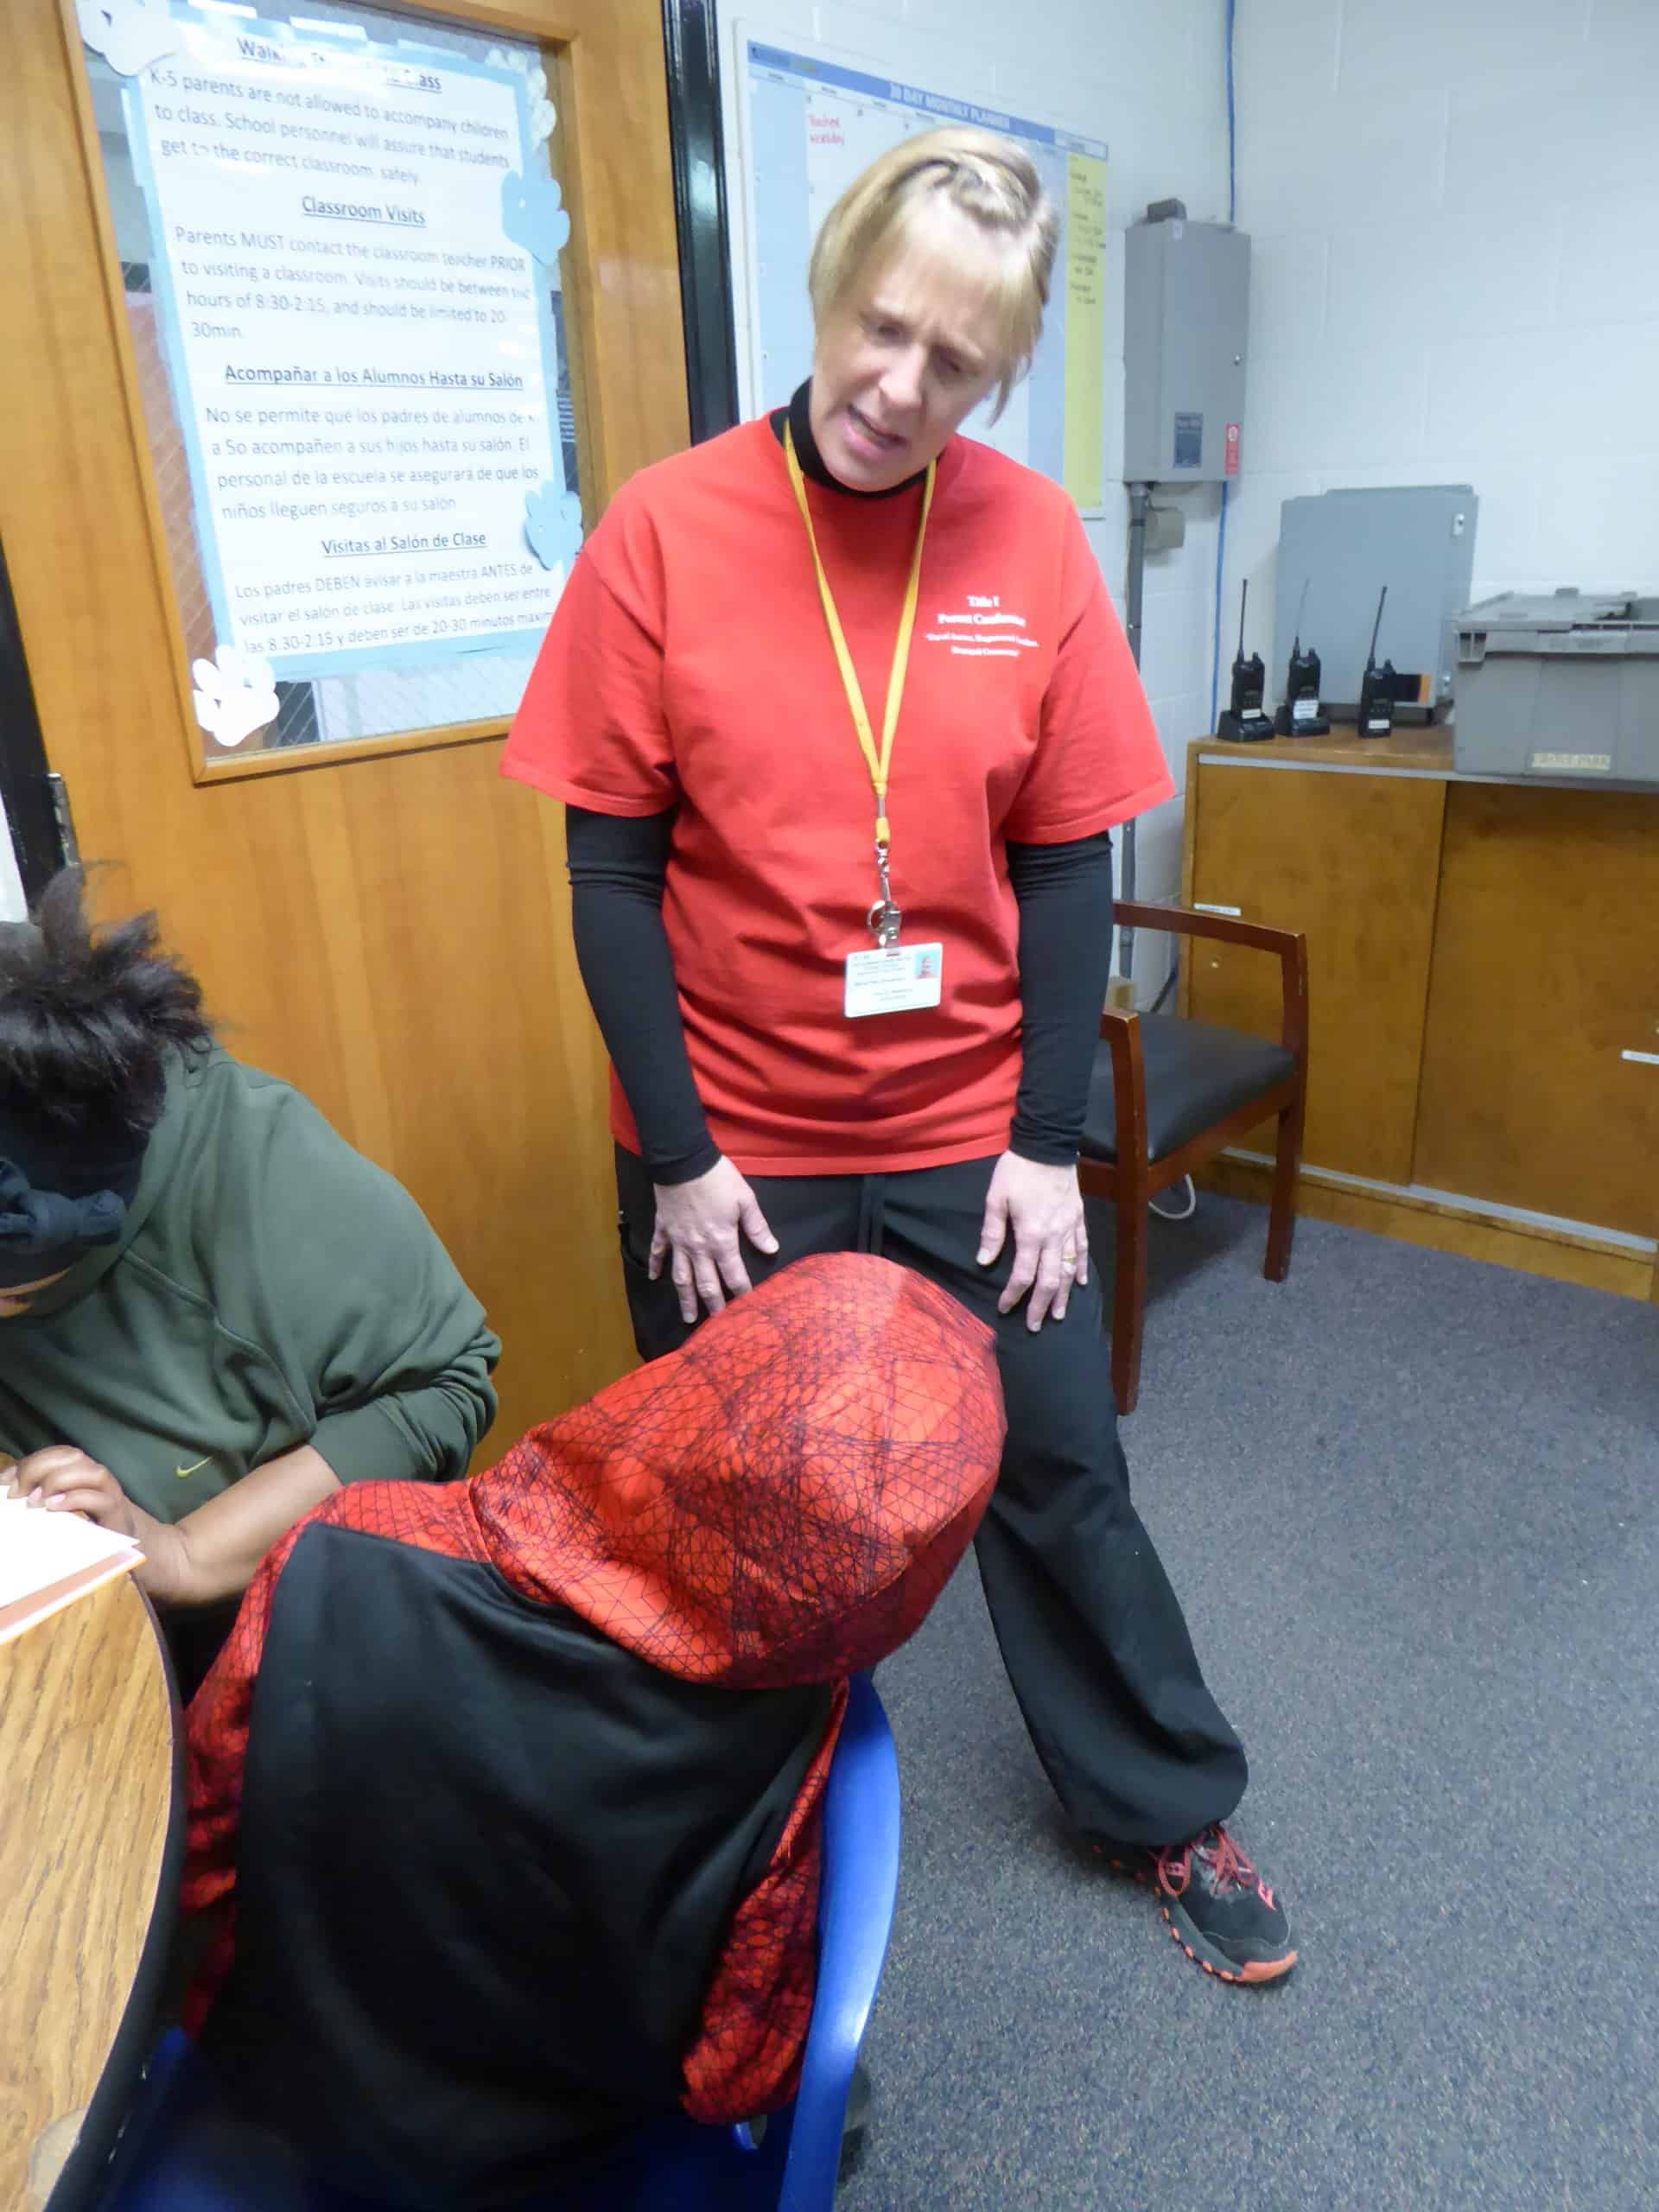 the school nurse talks to a little boy, while his mother sits at the adjacent table, filling out paperwork